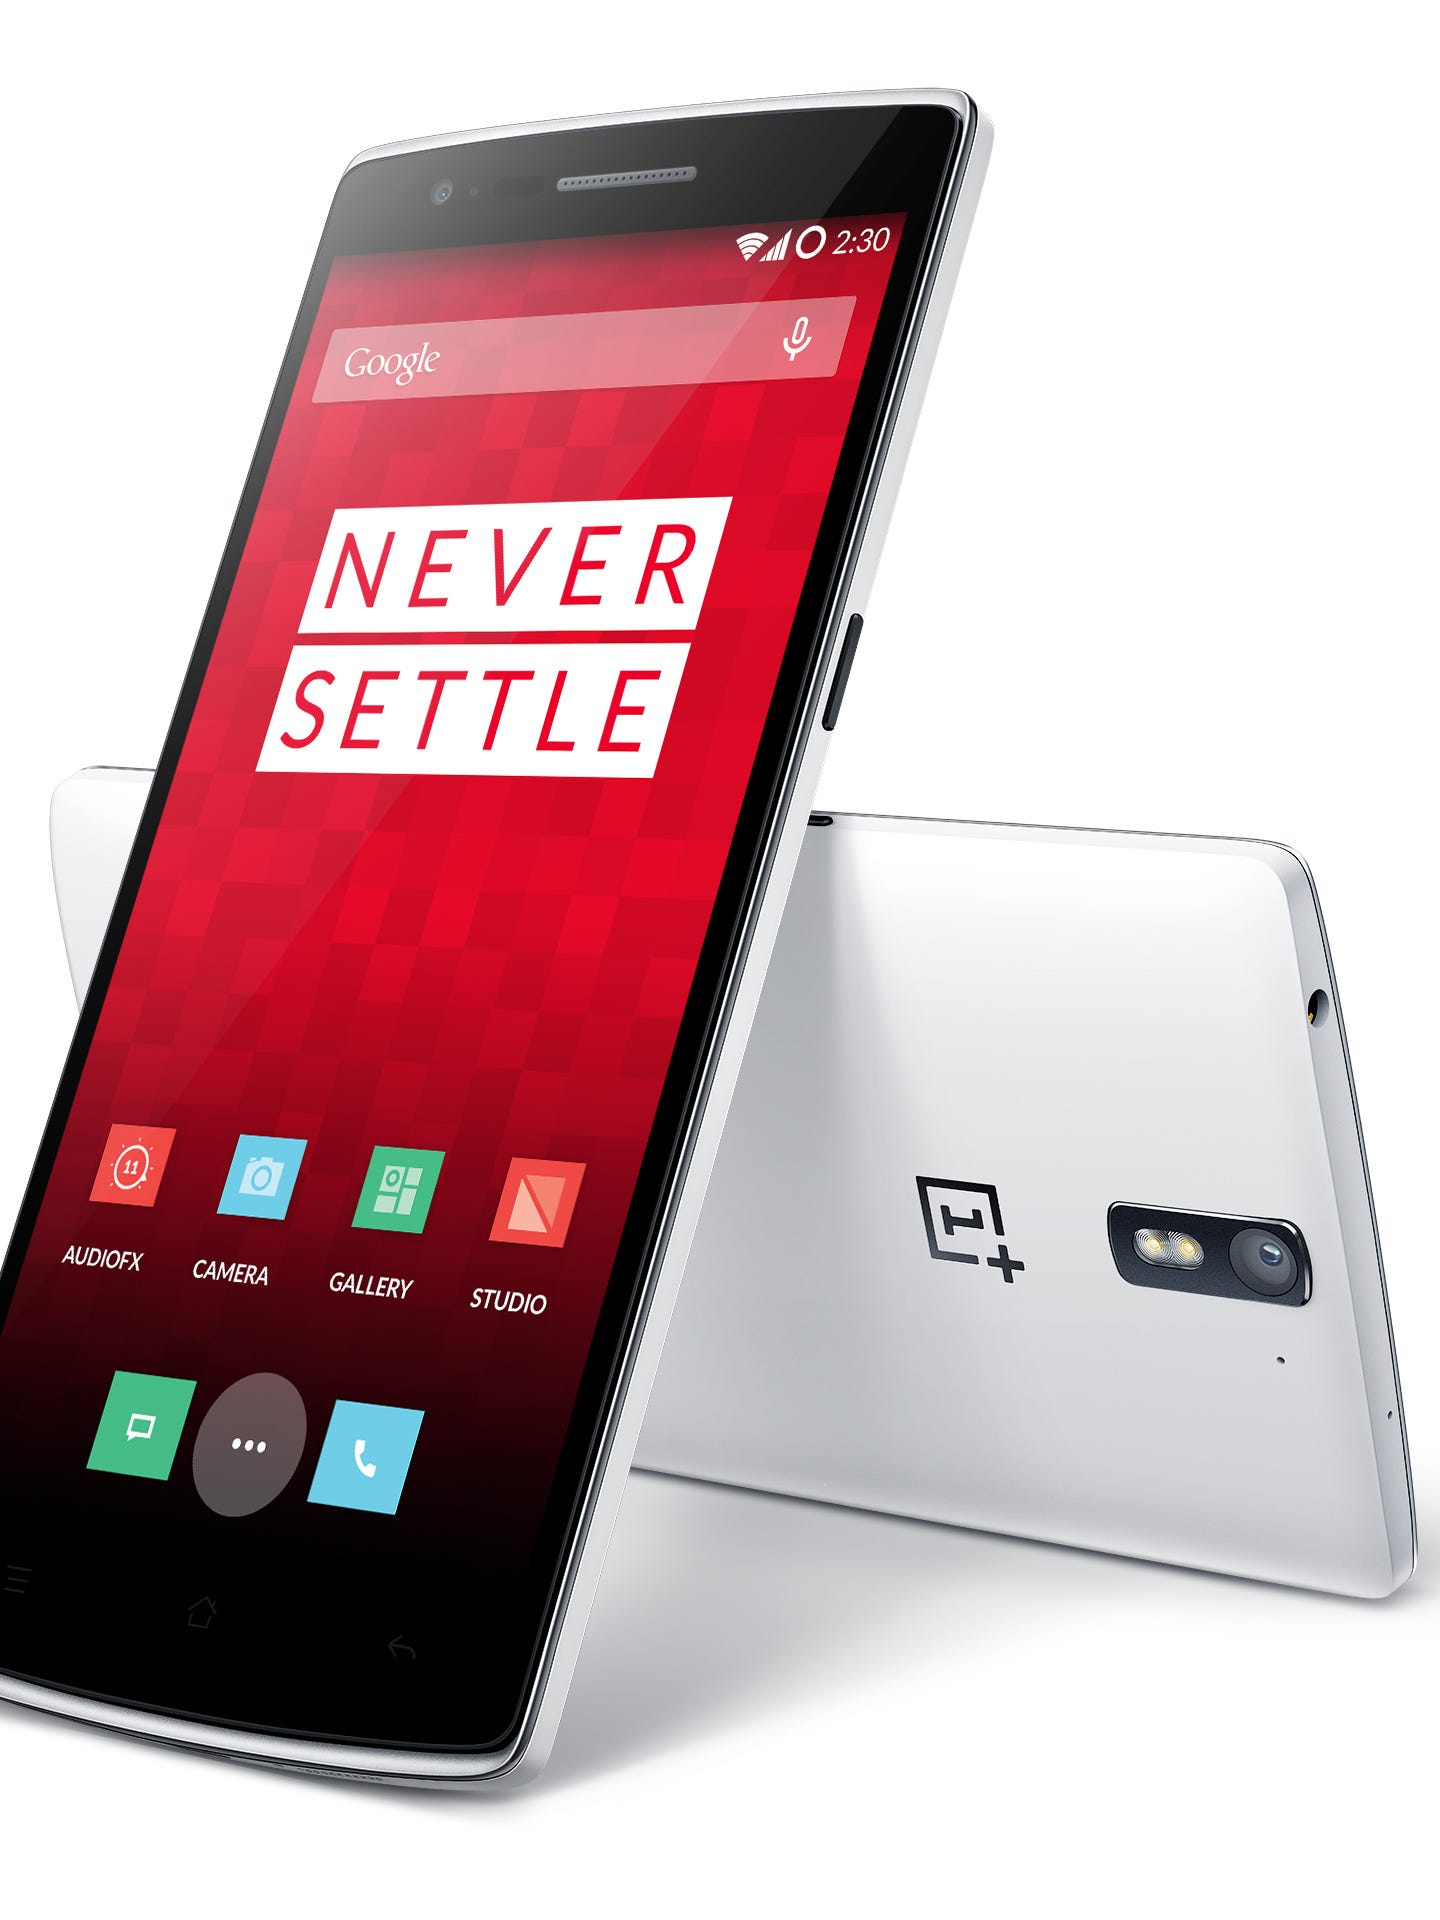 Oneplus One Smartphone Available